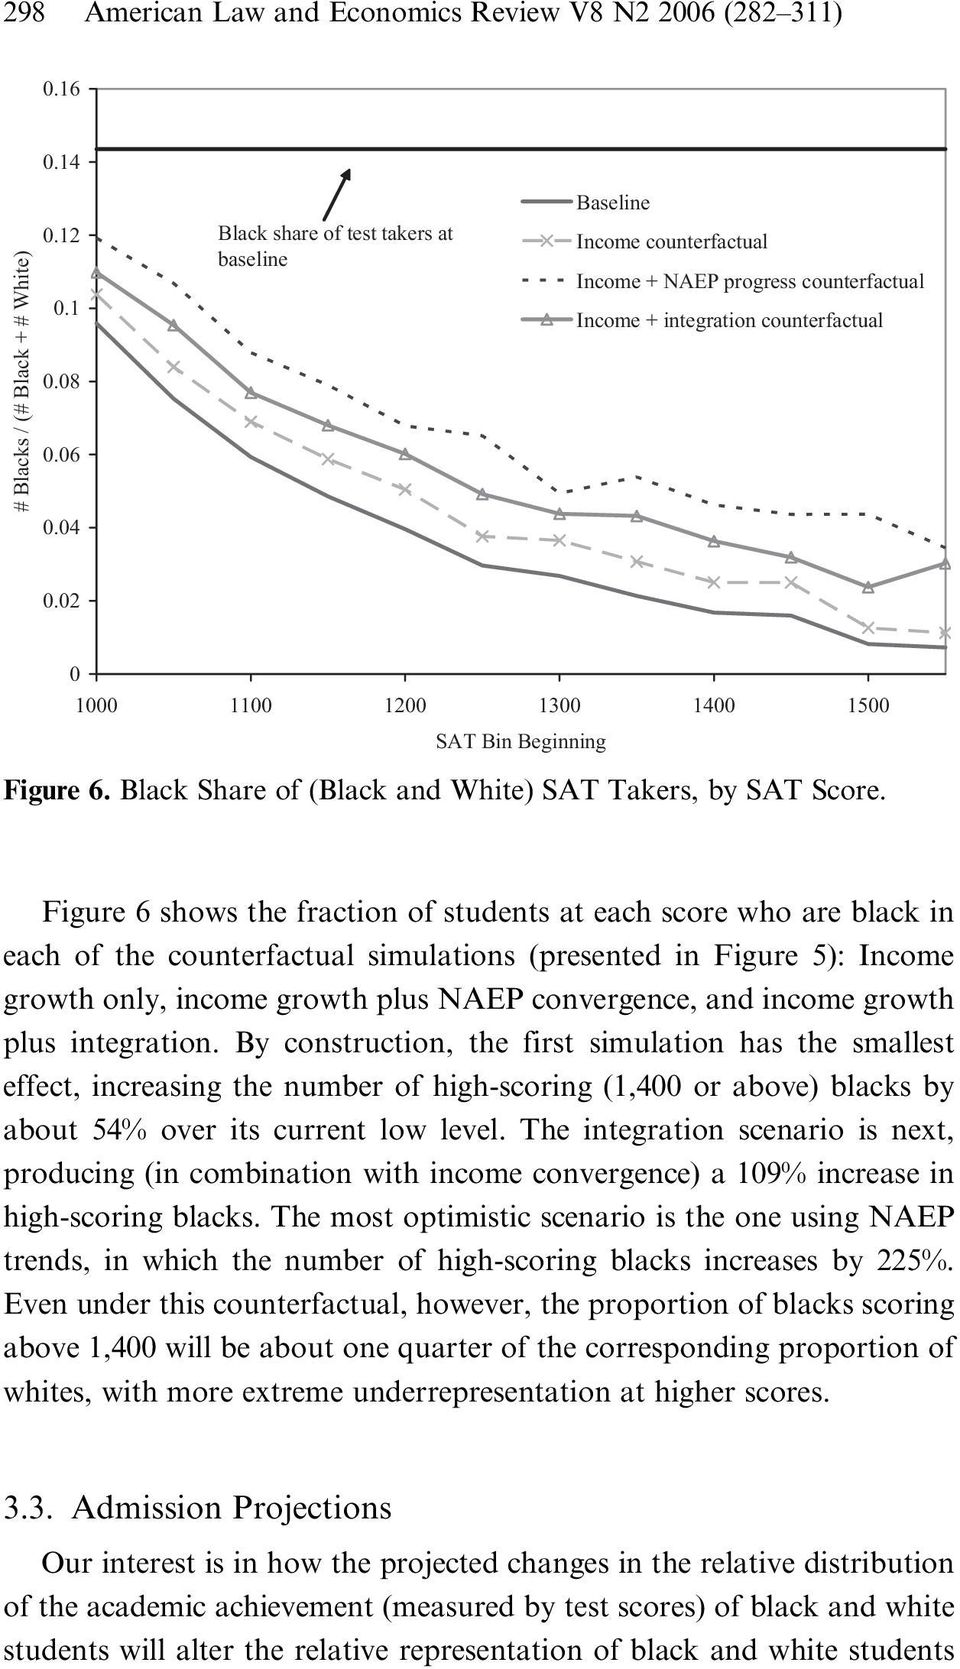 02 0 1000 1100 1200 1300 1400 1500 SAT Bin Beginning Figure 6. Black Share of (Black and White) SAT Takers, by SAT Score.